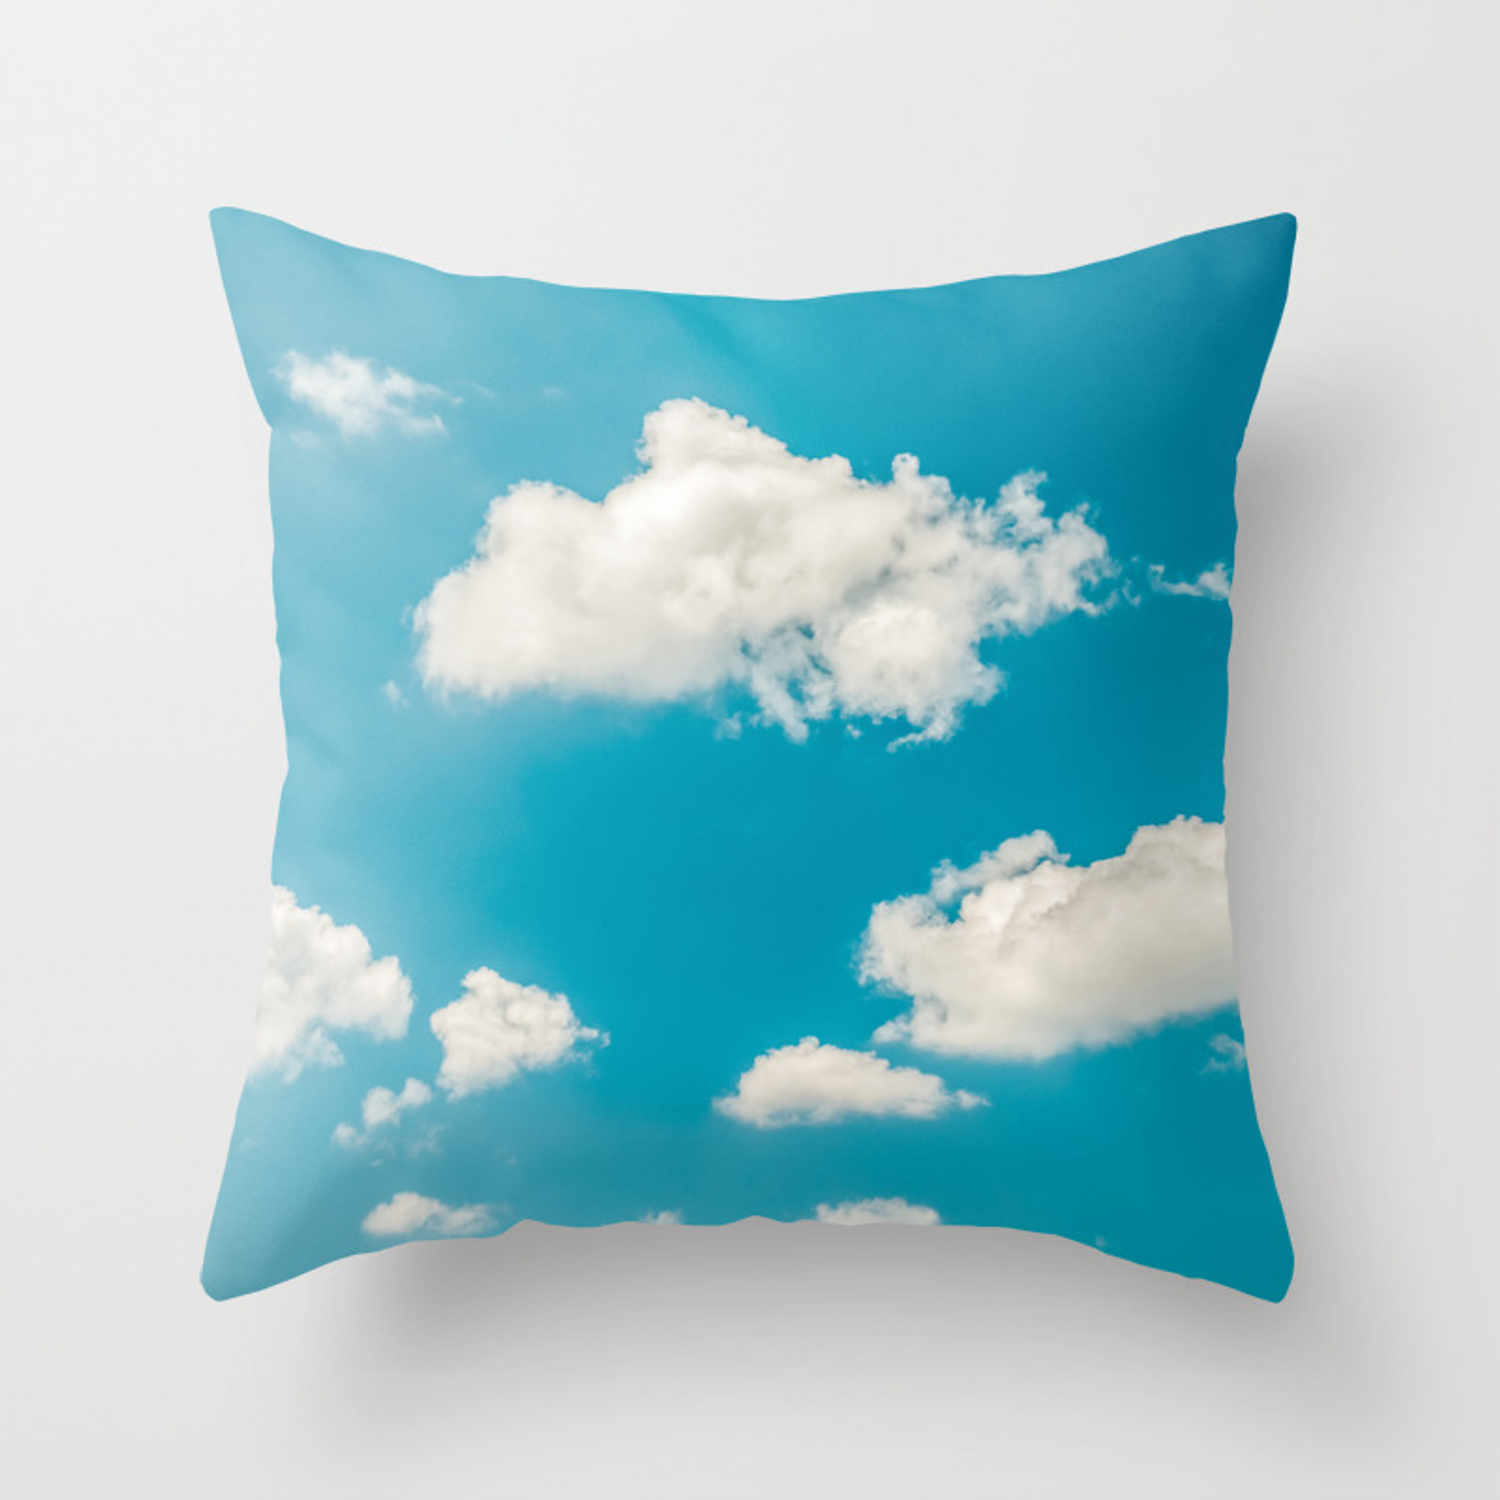 Deep Blue Summer Sky, White Clouds On Turquoise Sky, Heaven Scenery, Wall Art, Poster Decor Throw Pillow With Turquoise Skies Credenzas (Gallery 25 of 30)